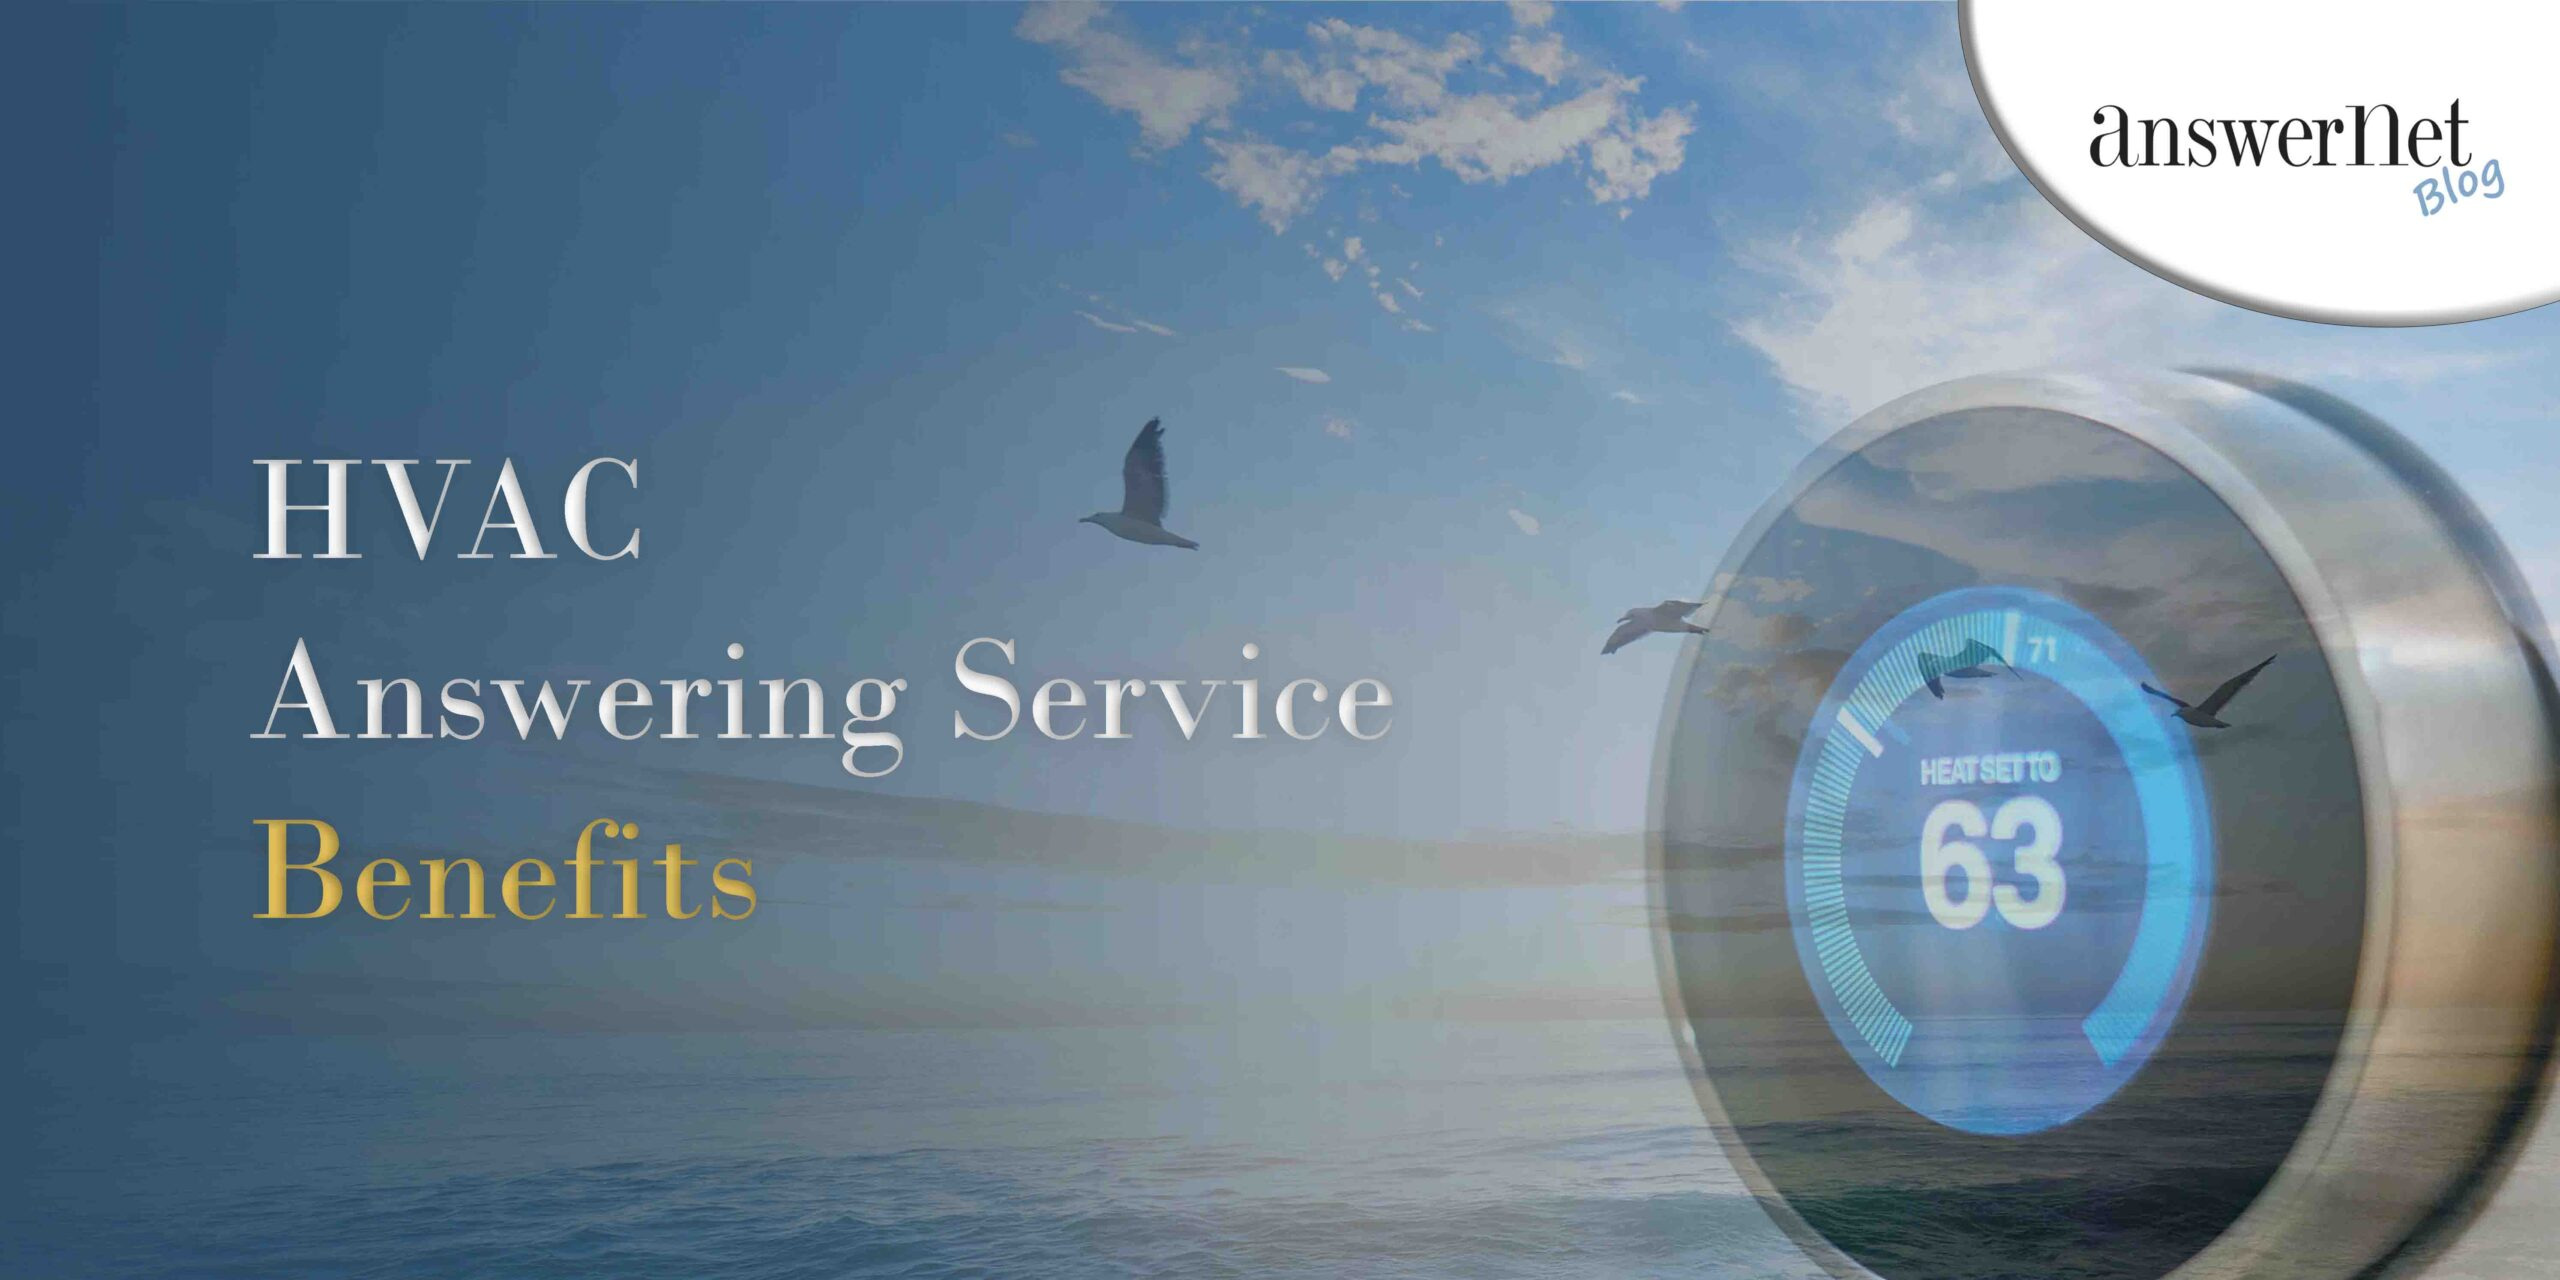 birds flying over an ocean during sunrise with a thermometer - hvac answering service